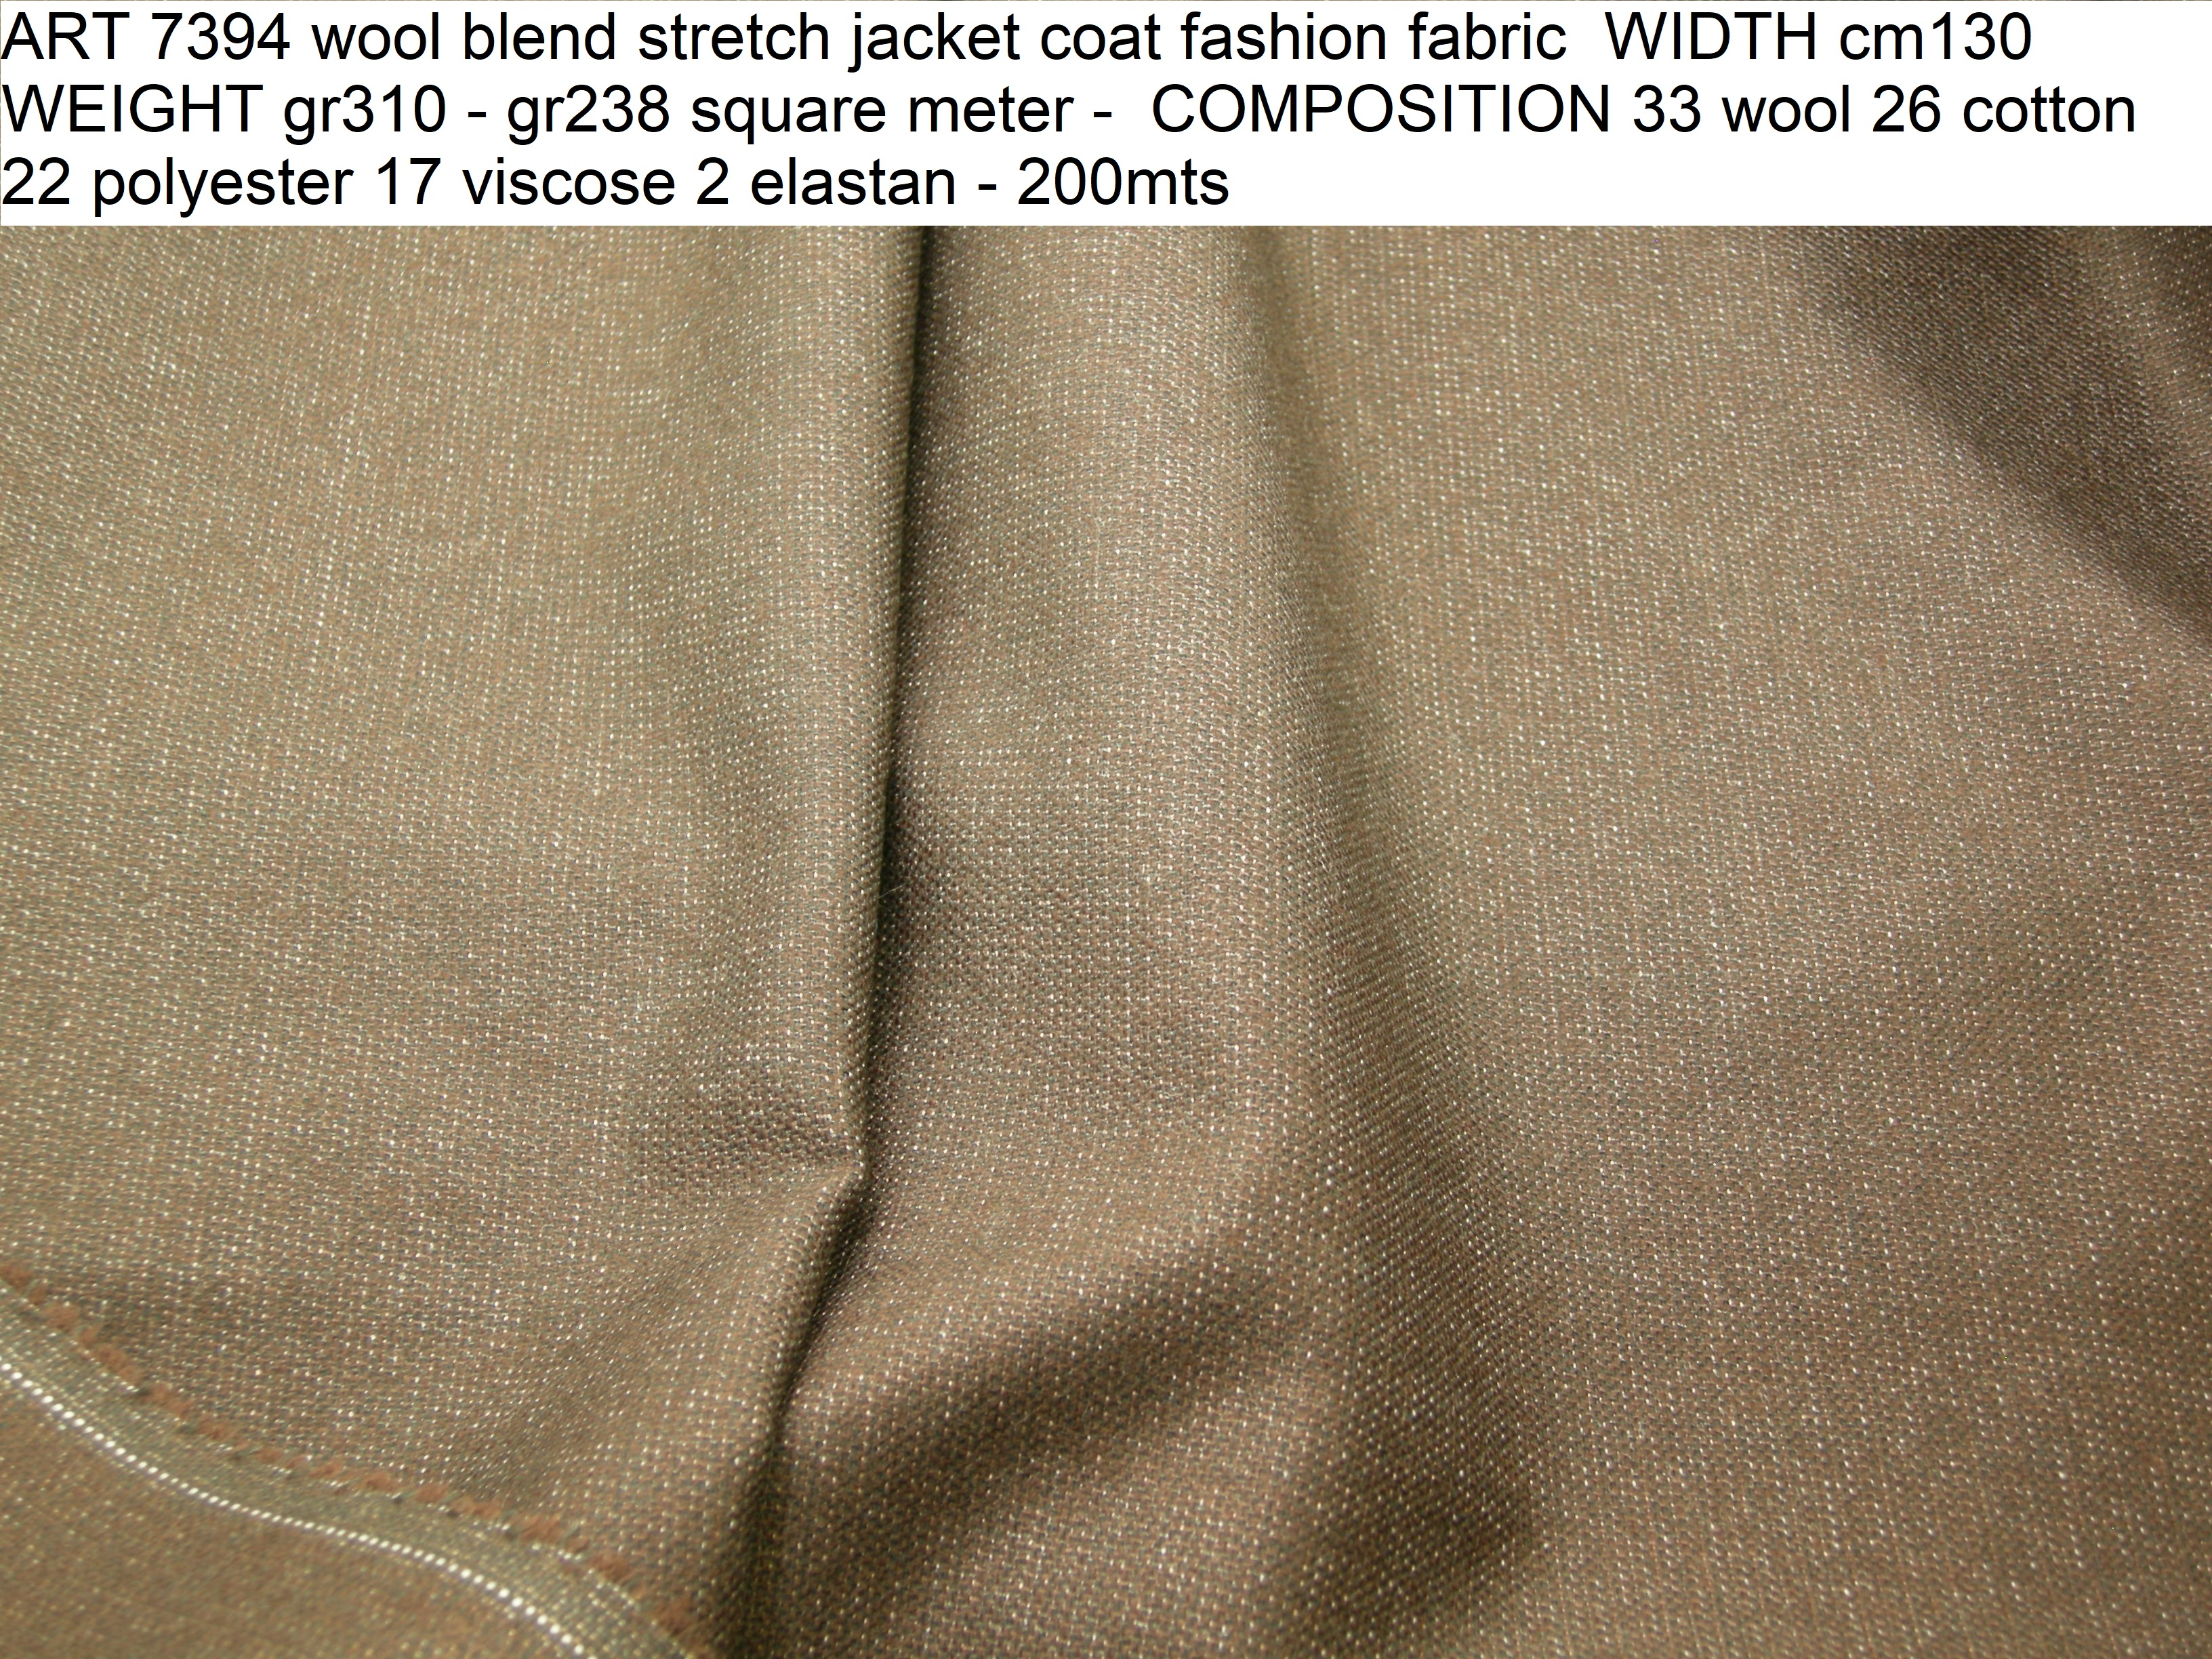 ART 7394 wool blend stretch jacket coat fashion fabric WIDTH cm130 WEIGHT gr310 - gr238 square meter - COMPOSITION 33 wool 26 cotton 22 polyester 17 viscose 2 elastan - 200mts